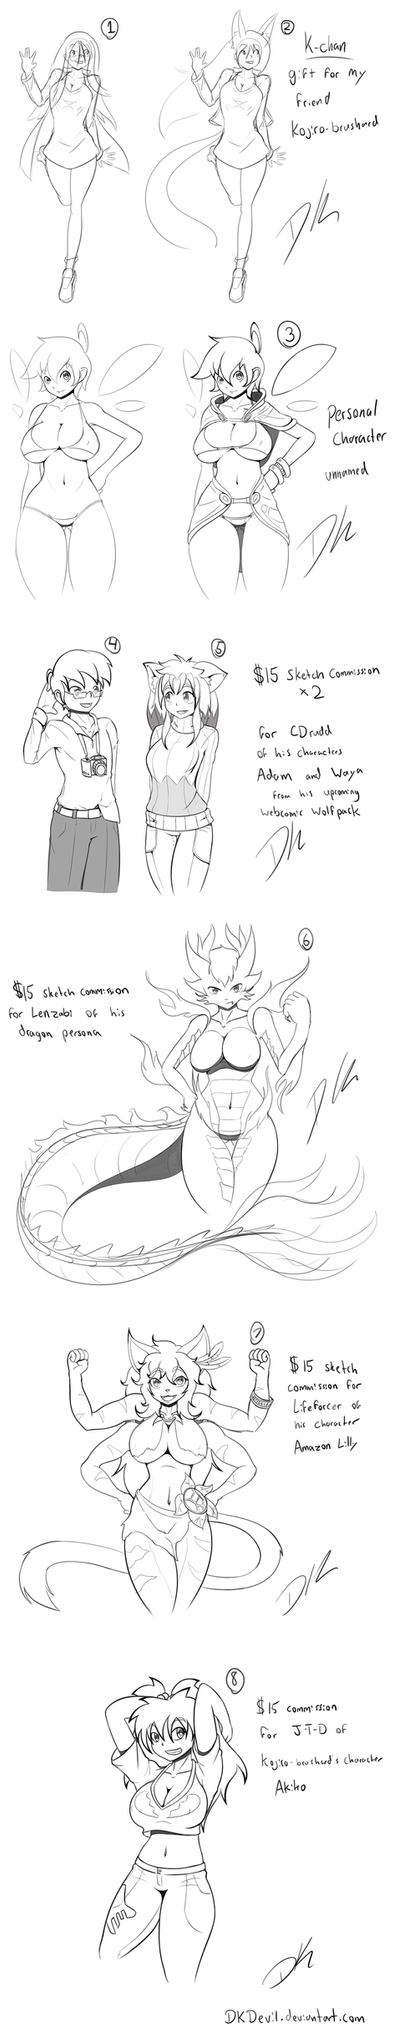 Sketch and Commission dump #1 2014 by DKDevil